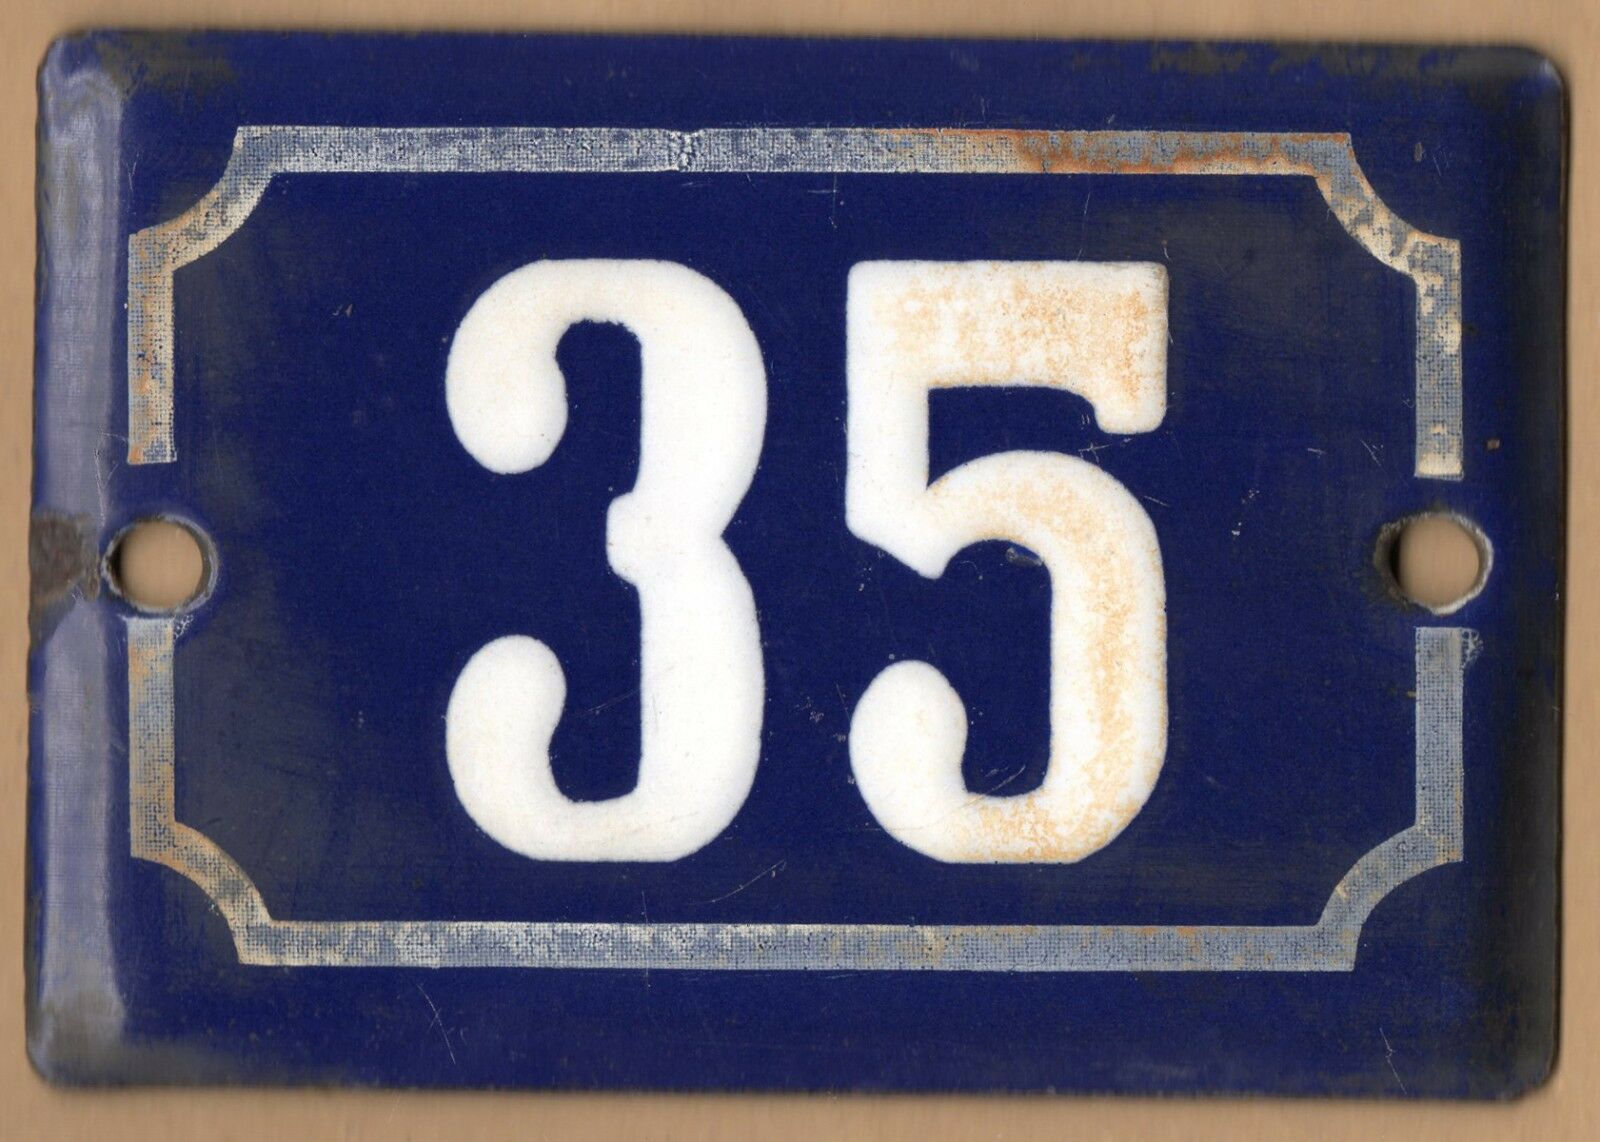 Cute old blue French house number 35 door gate plate plaque enamel metal sign